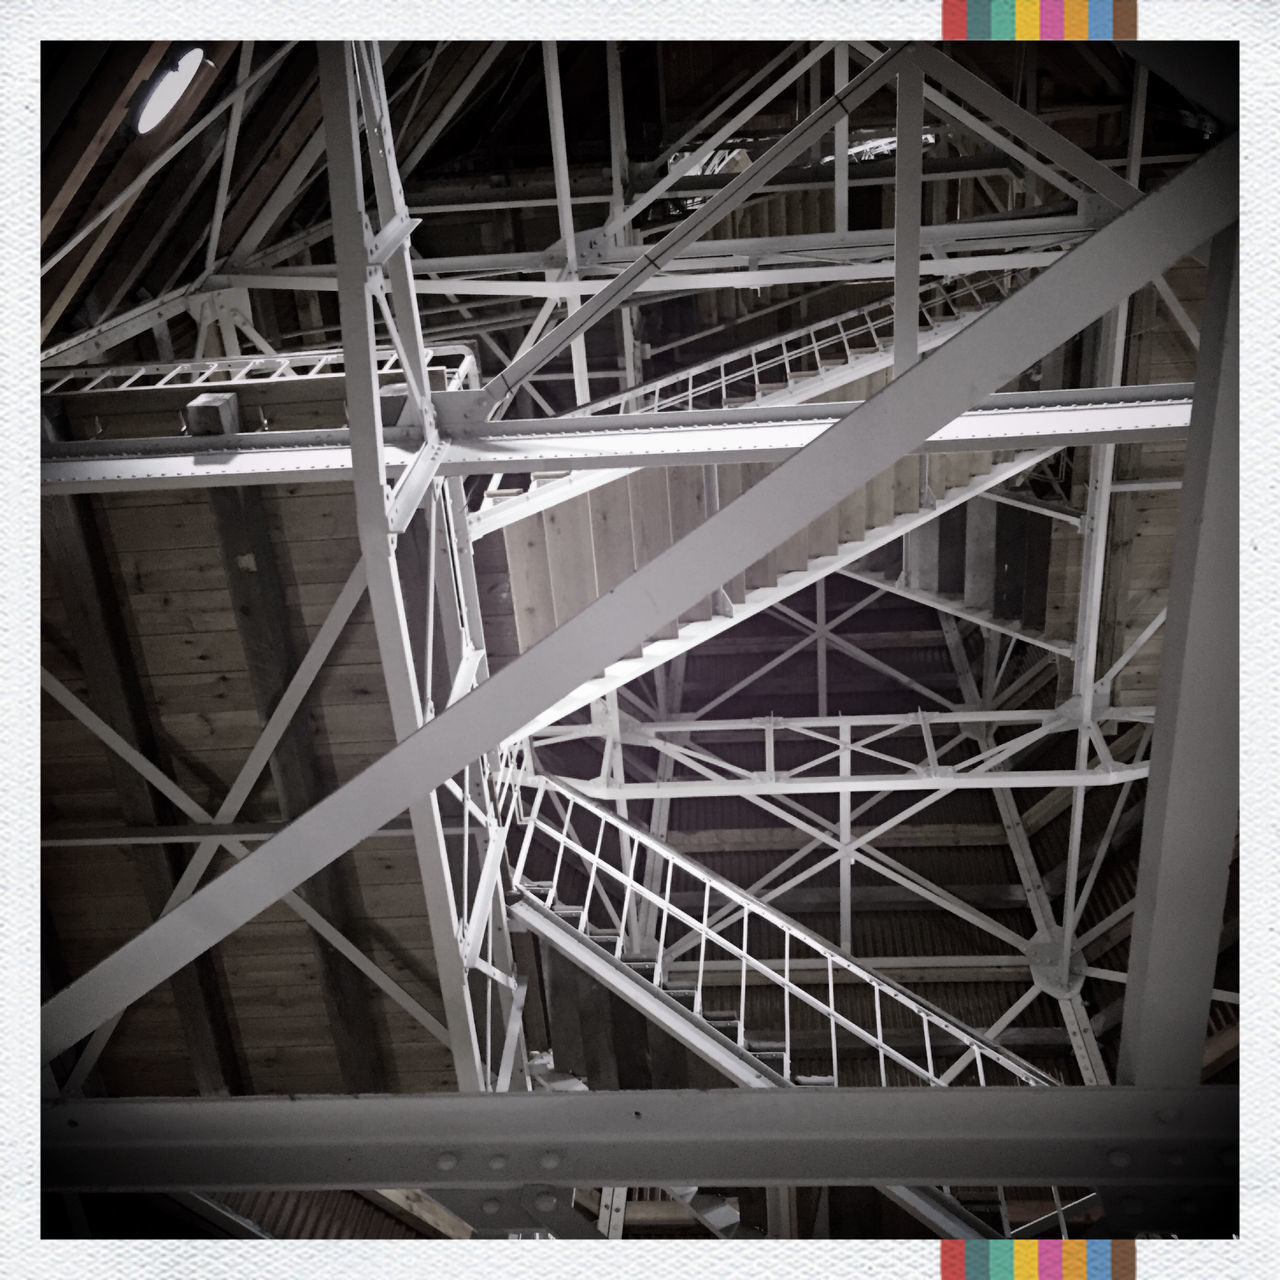 To the top...! Architecture Bell Tower Built Structure Ceiling Church Complexity Connection Low Angle View Metal Mobilephotography No People St. Petri Stairs